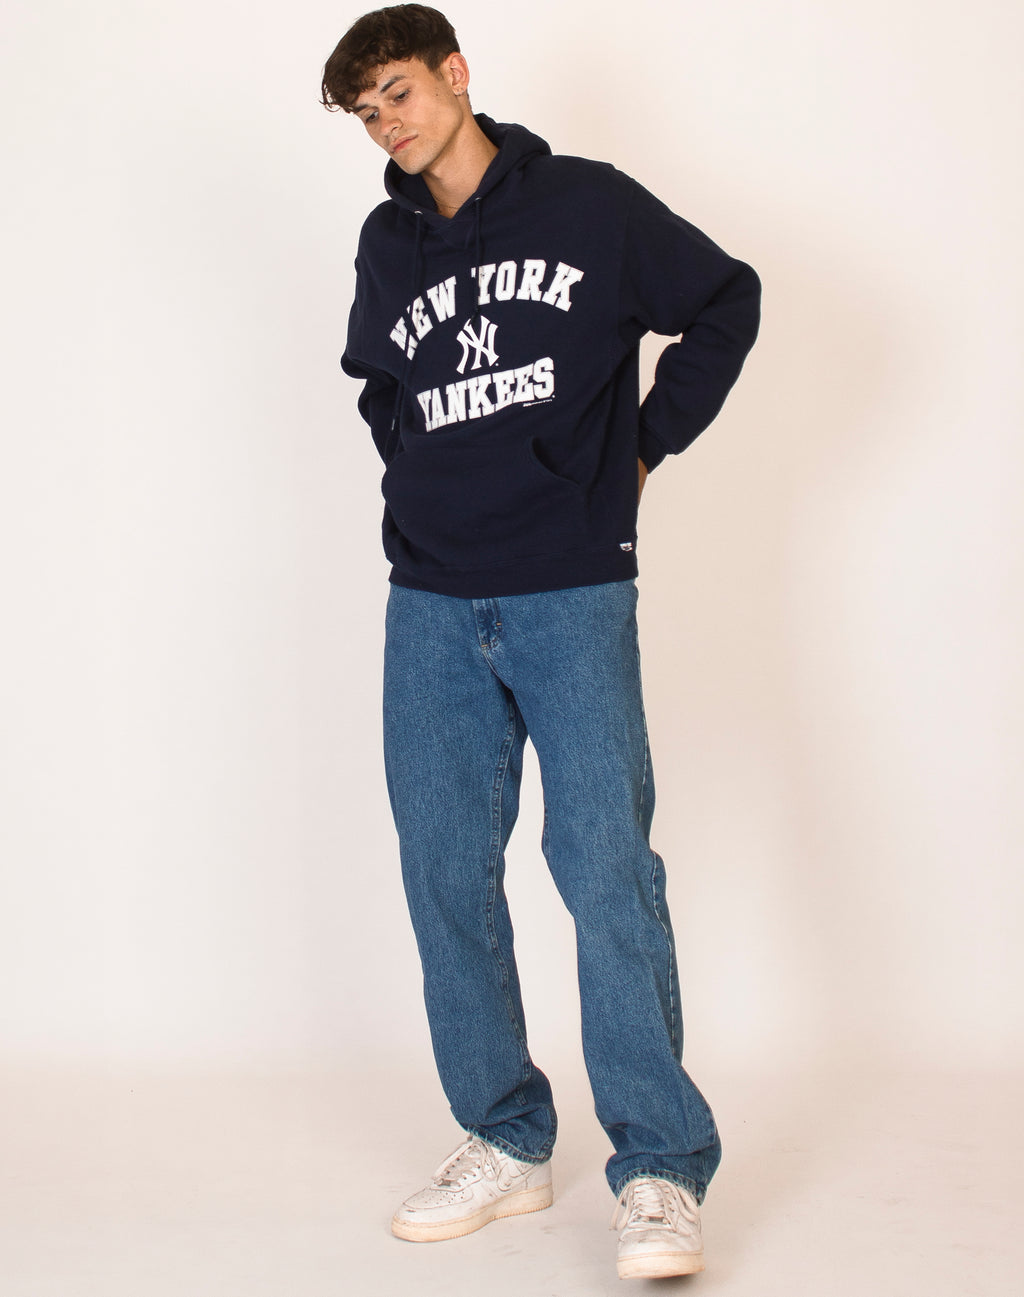 NEW YORK YANKEES NAVY HOODIE